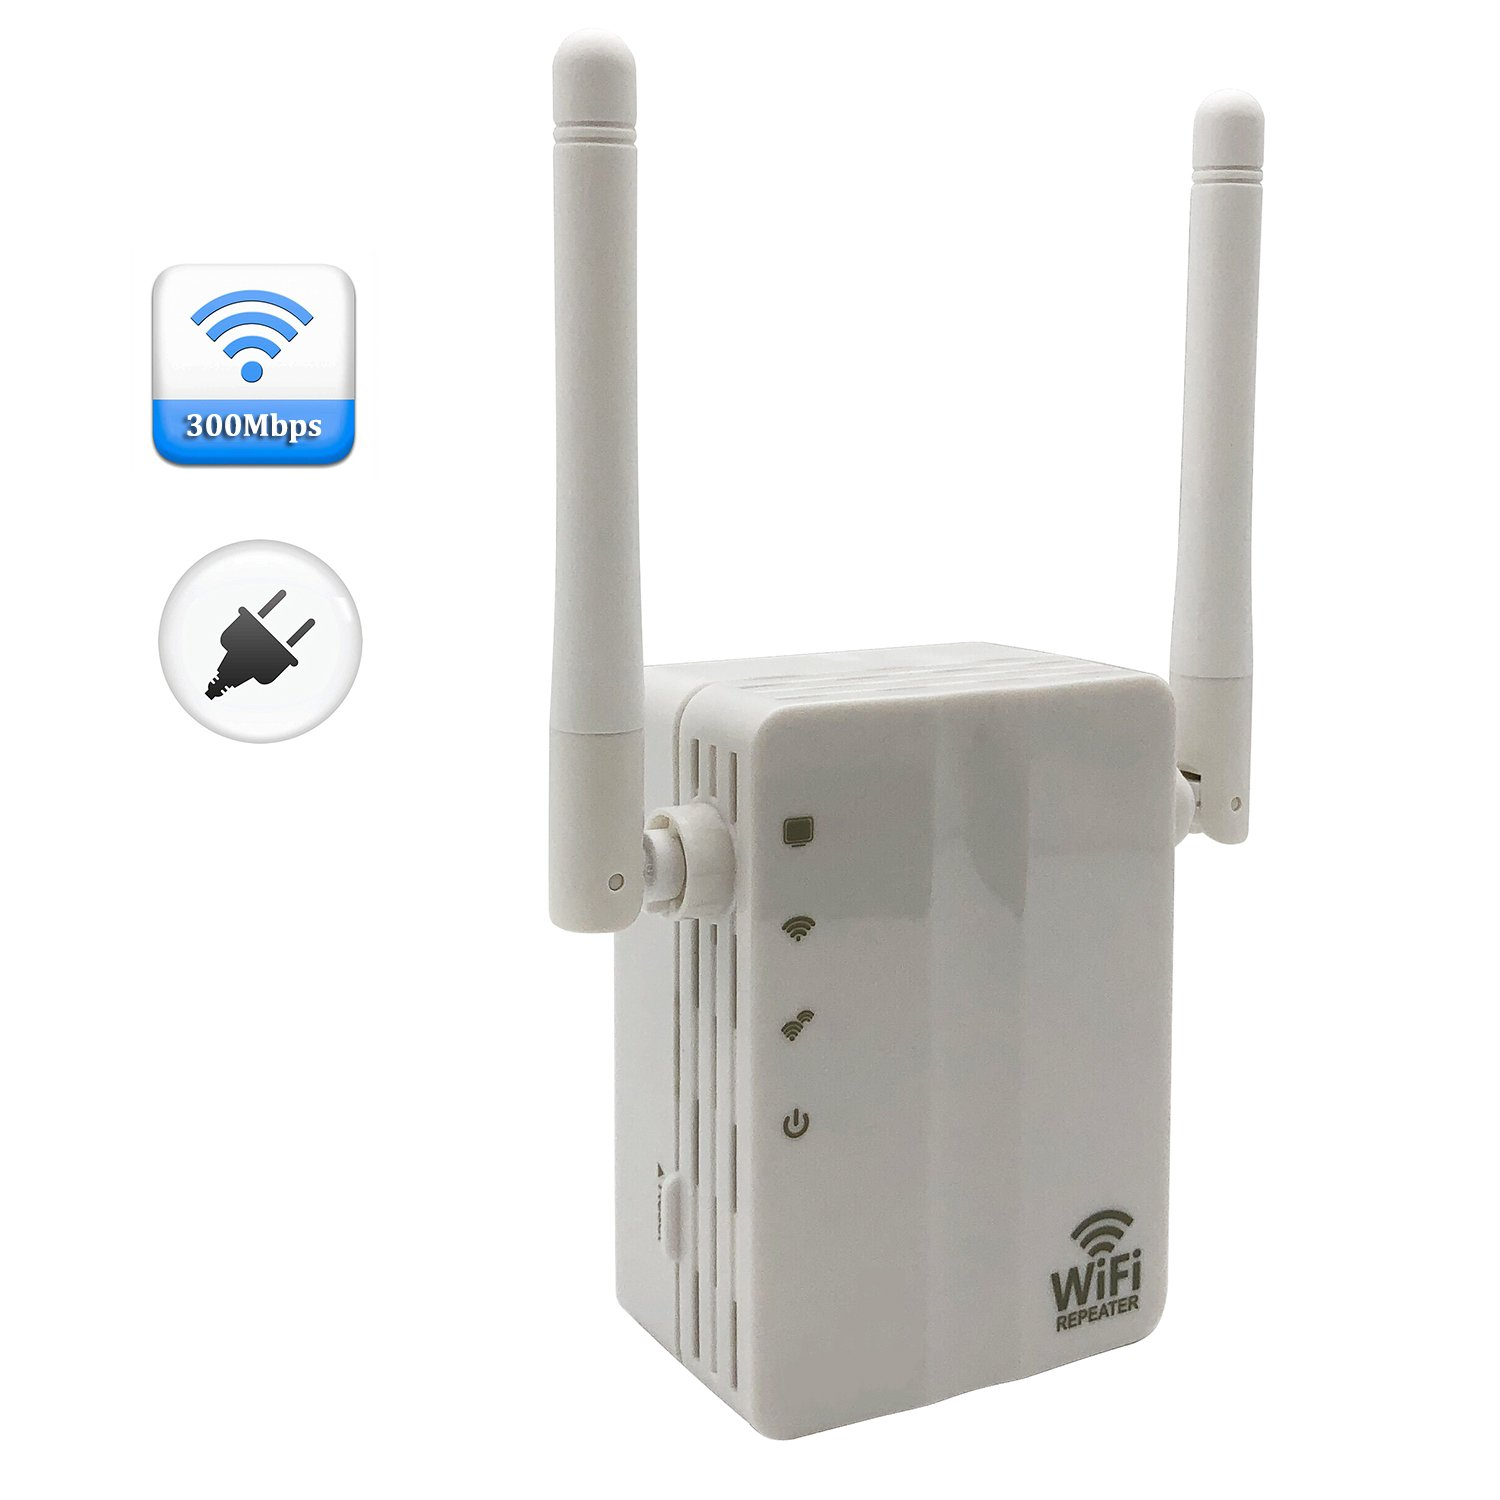 300Mbps Wall Plug WiFi Range Extender Repeater for Boost Smart Home WiFi Coverage - White